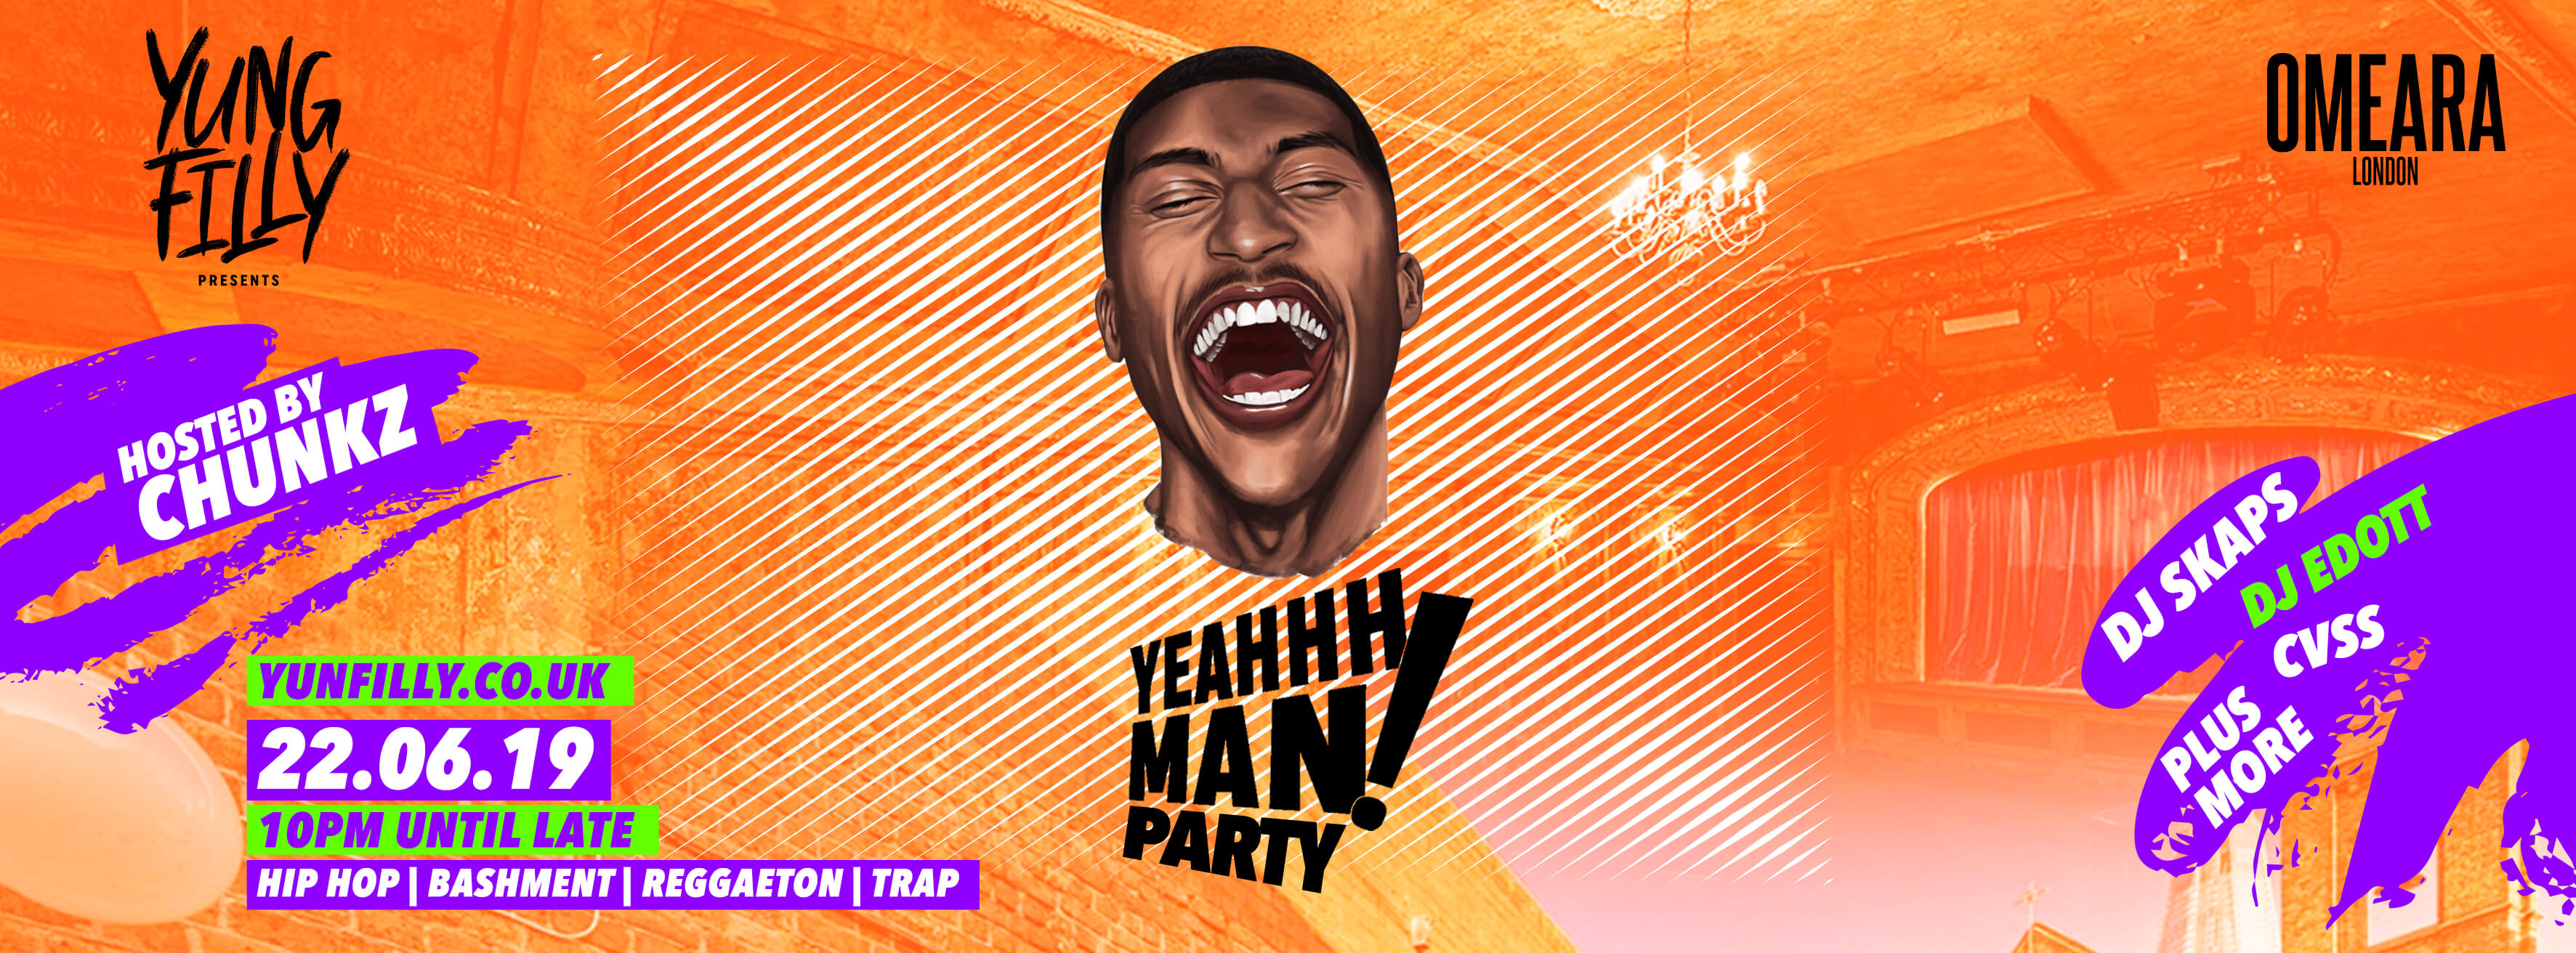 Yung Filly Presents: YeahhhMan Party + Special Guests – Hosted by Chunkz